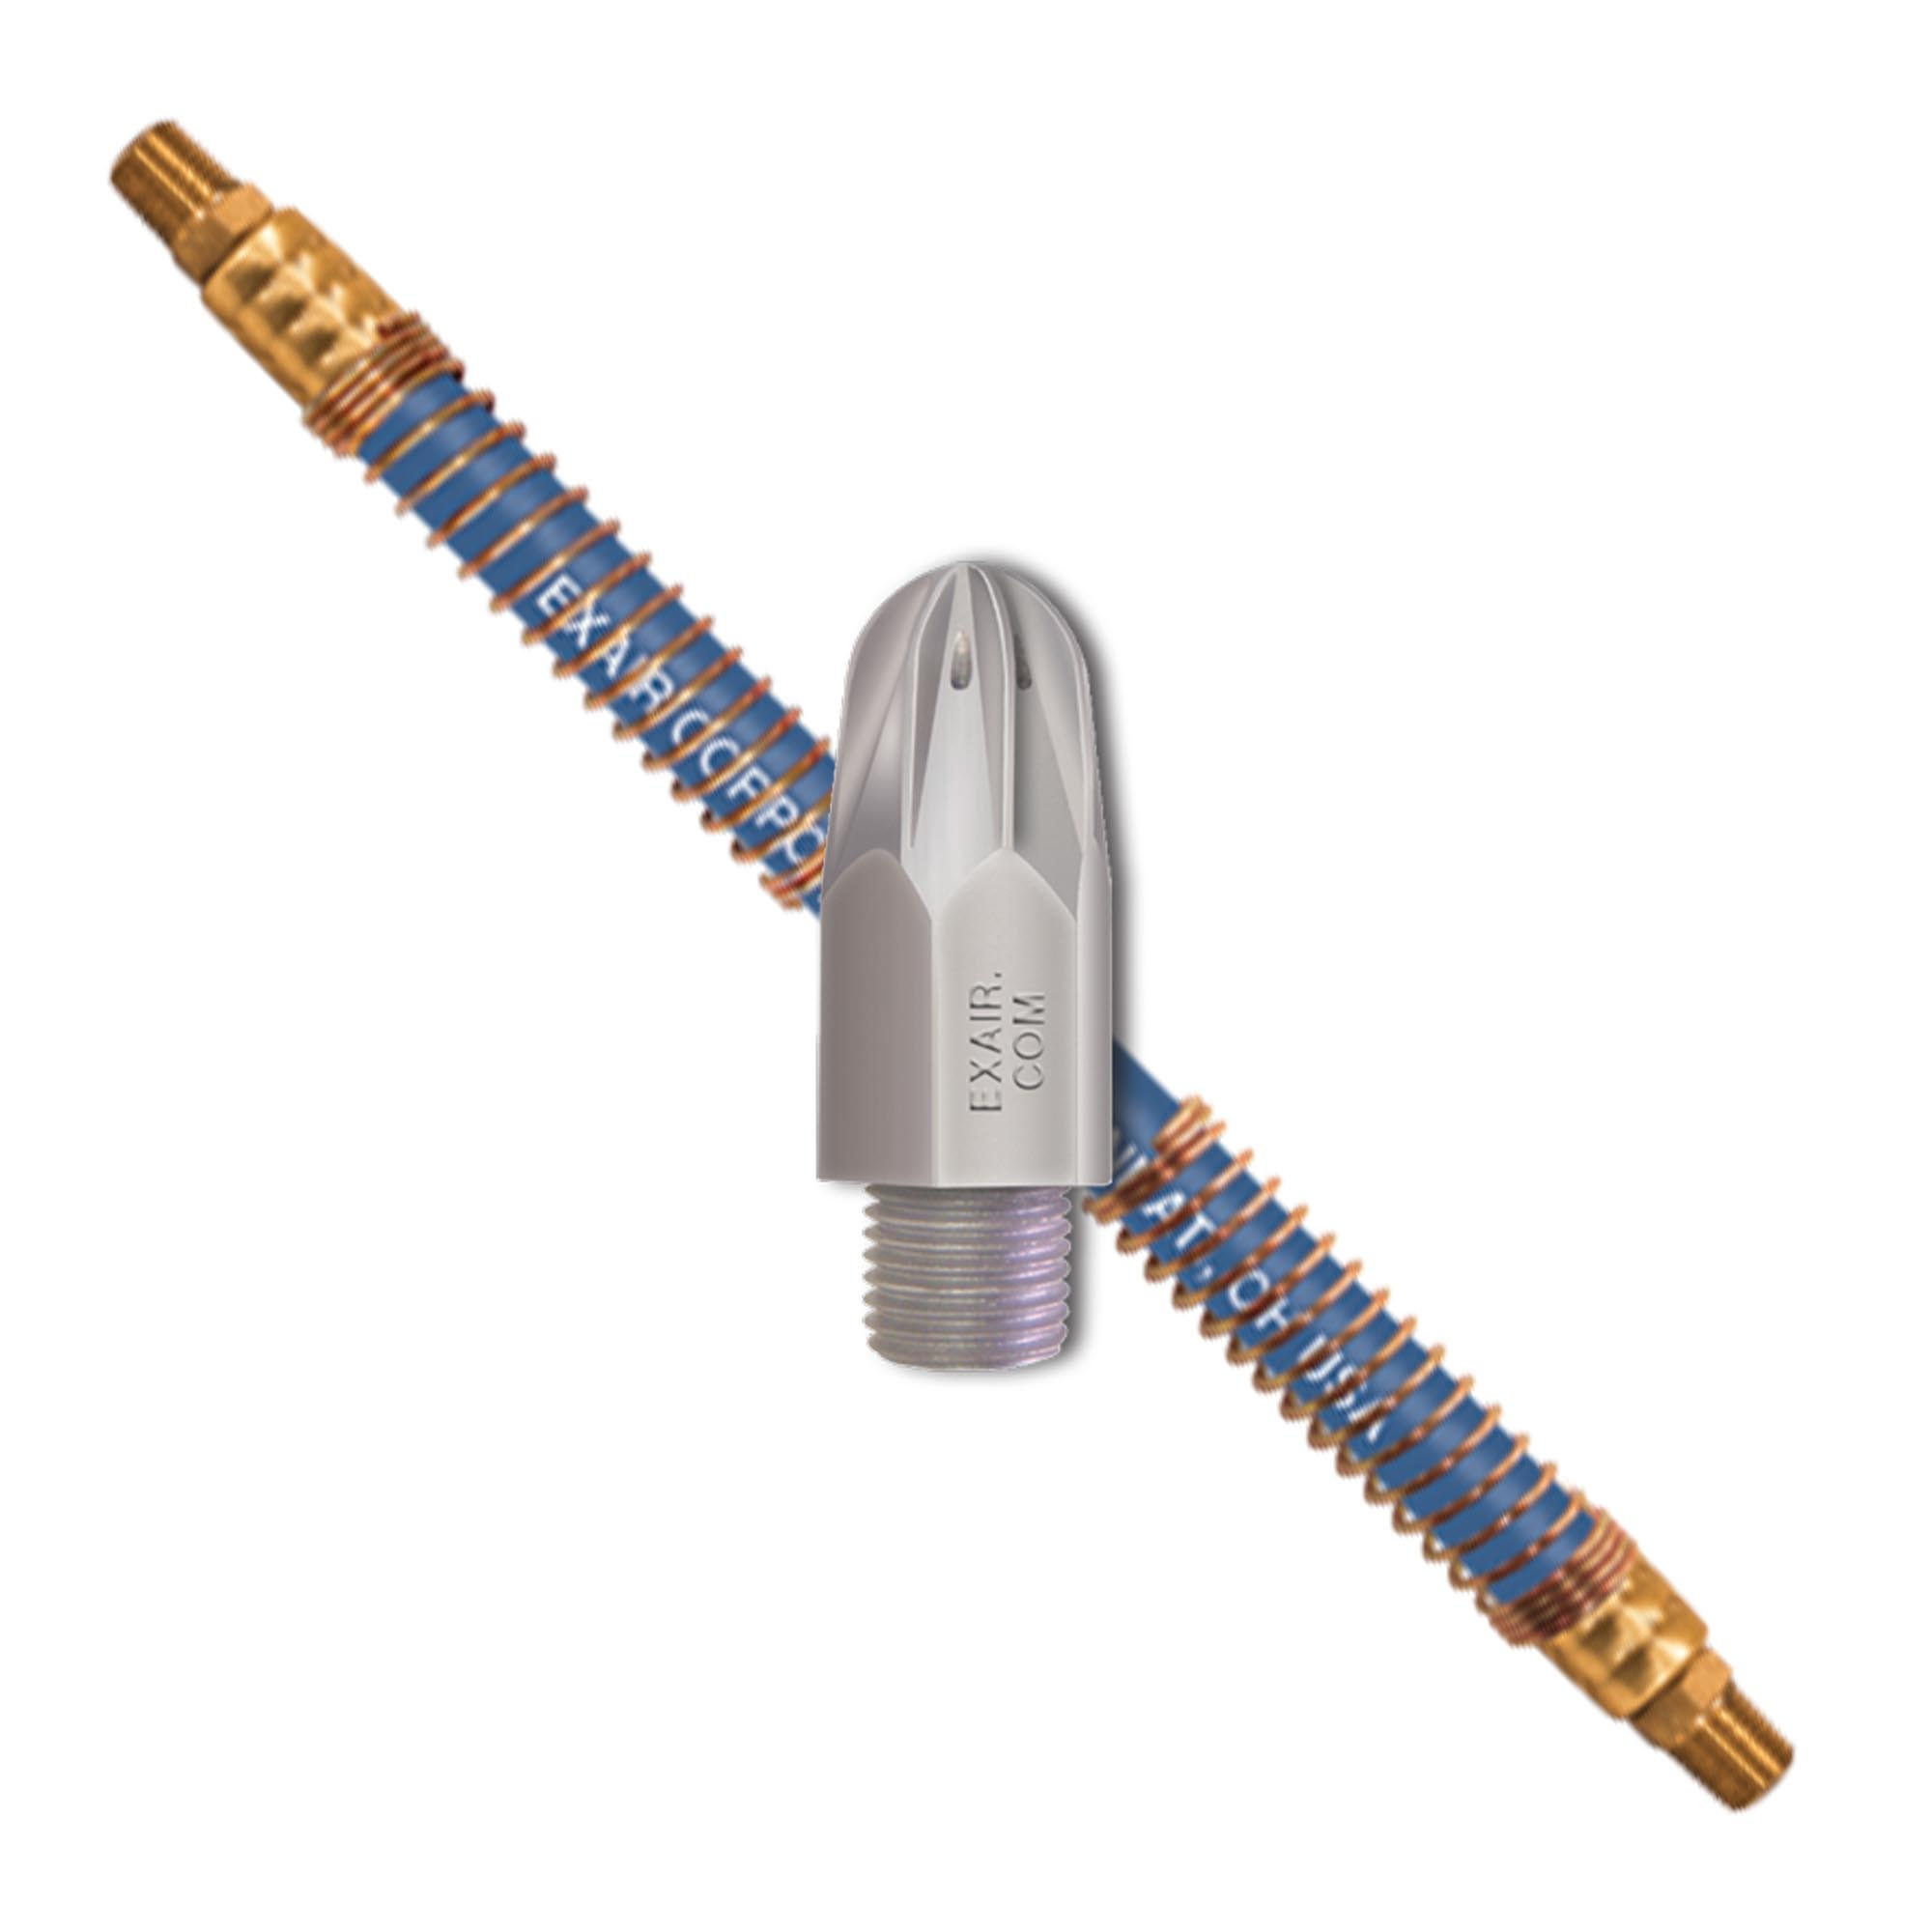 Model 1103-9256 Mini Super Air Nozzle with Stay Set Hose creates precise positioning of the air nozzle